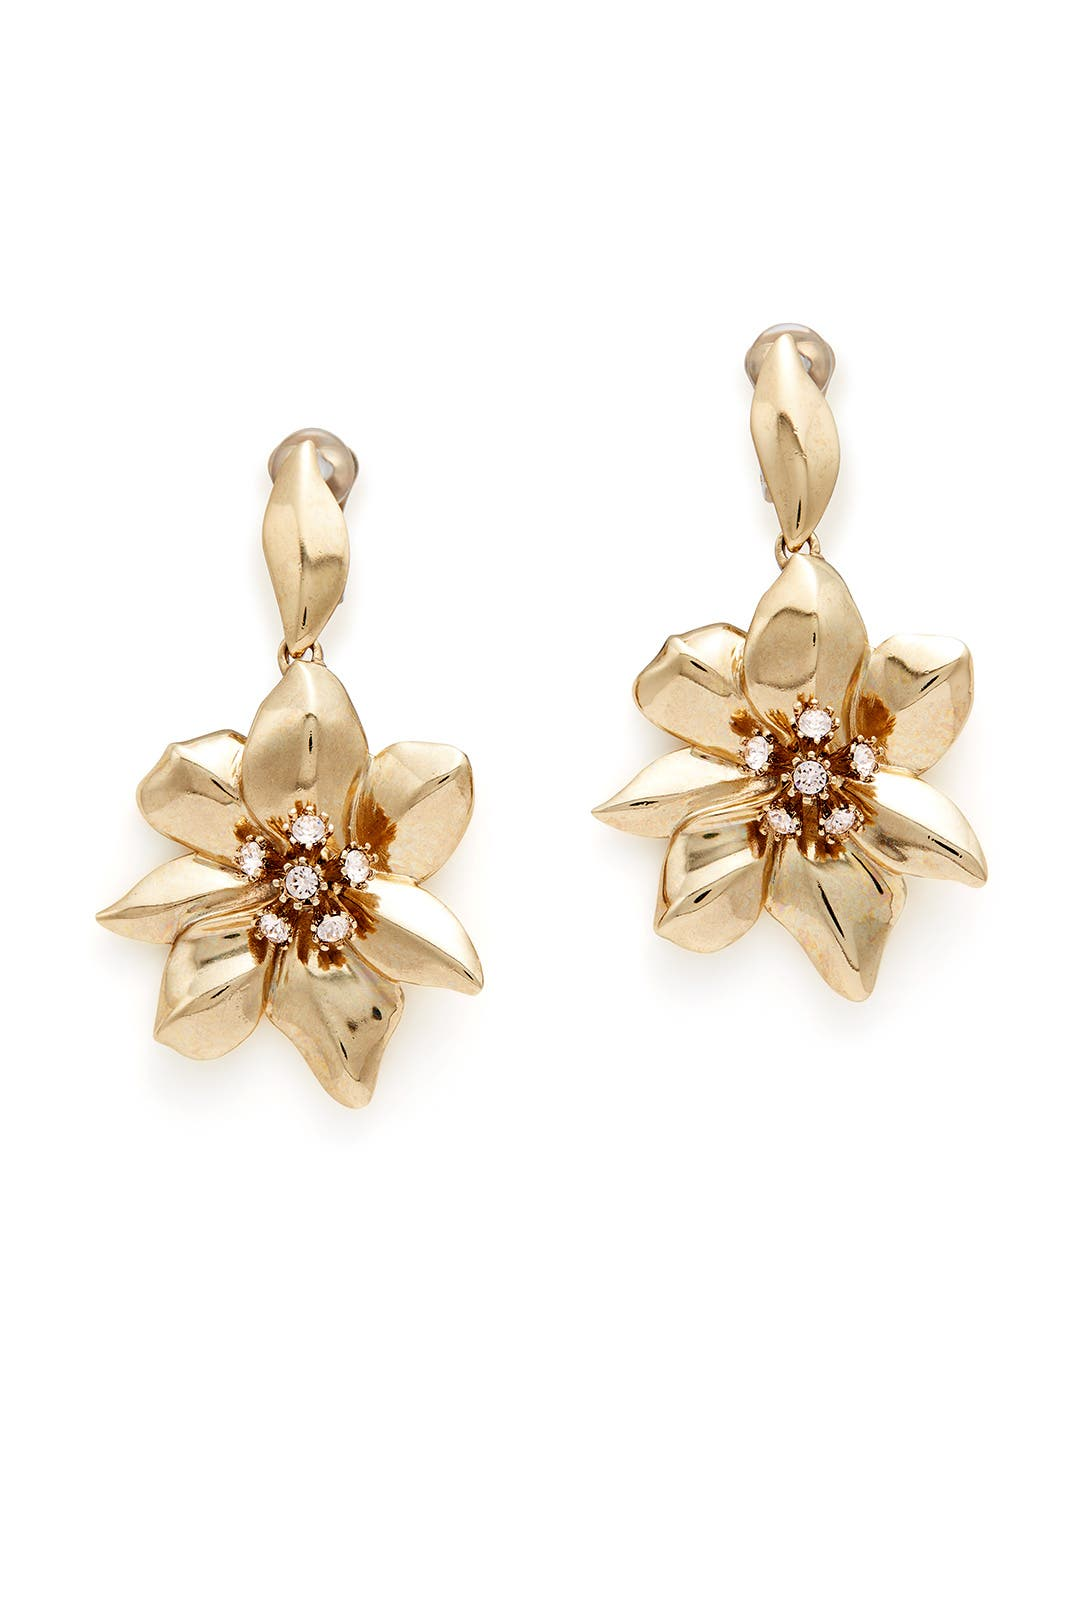 Bisque Flower Earrings By Oscar De La Renta For 45 Rent